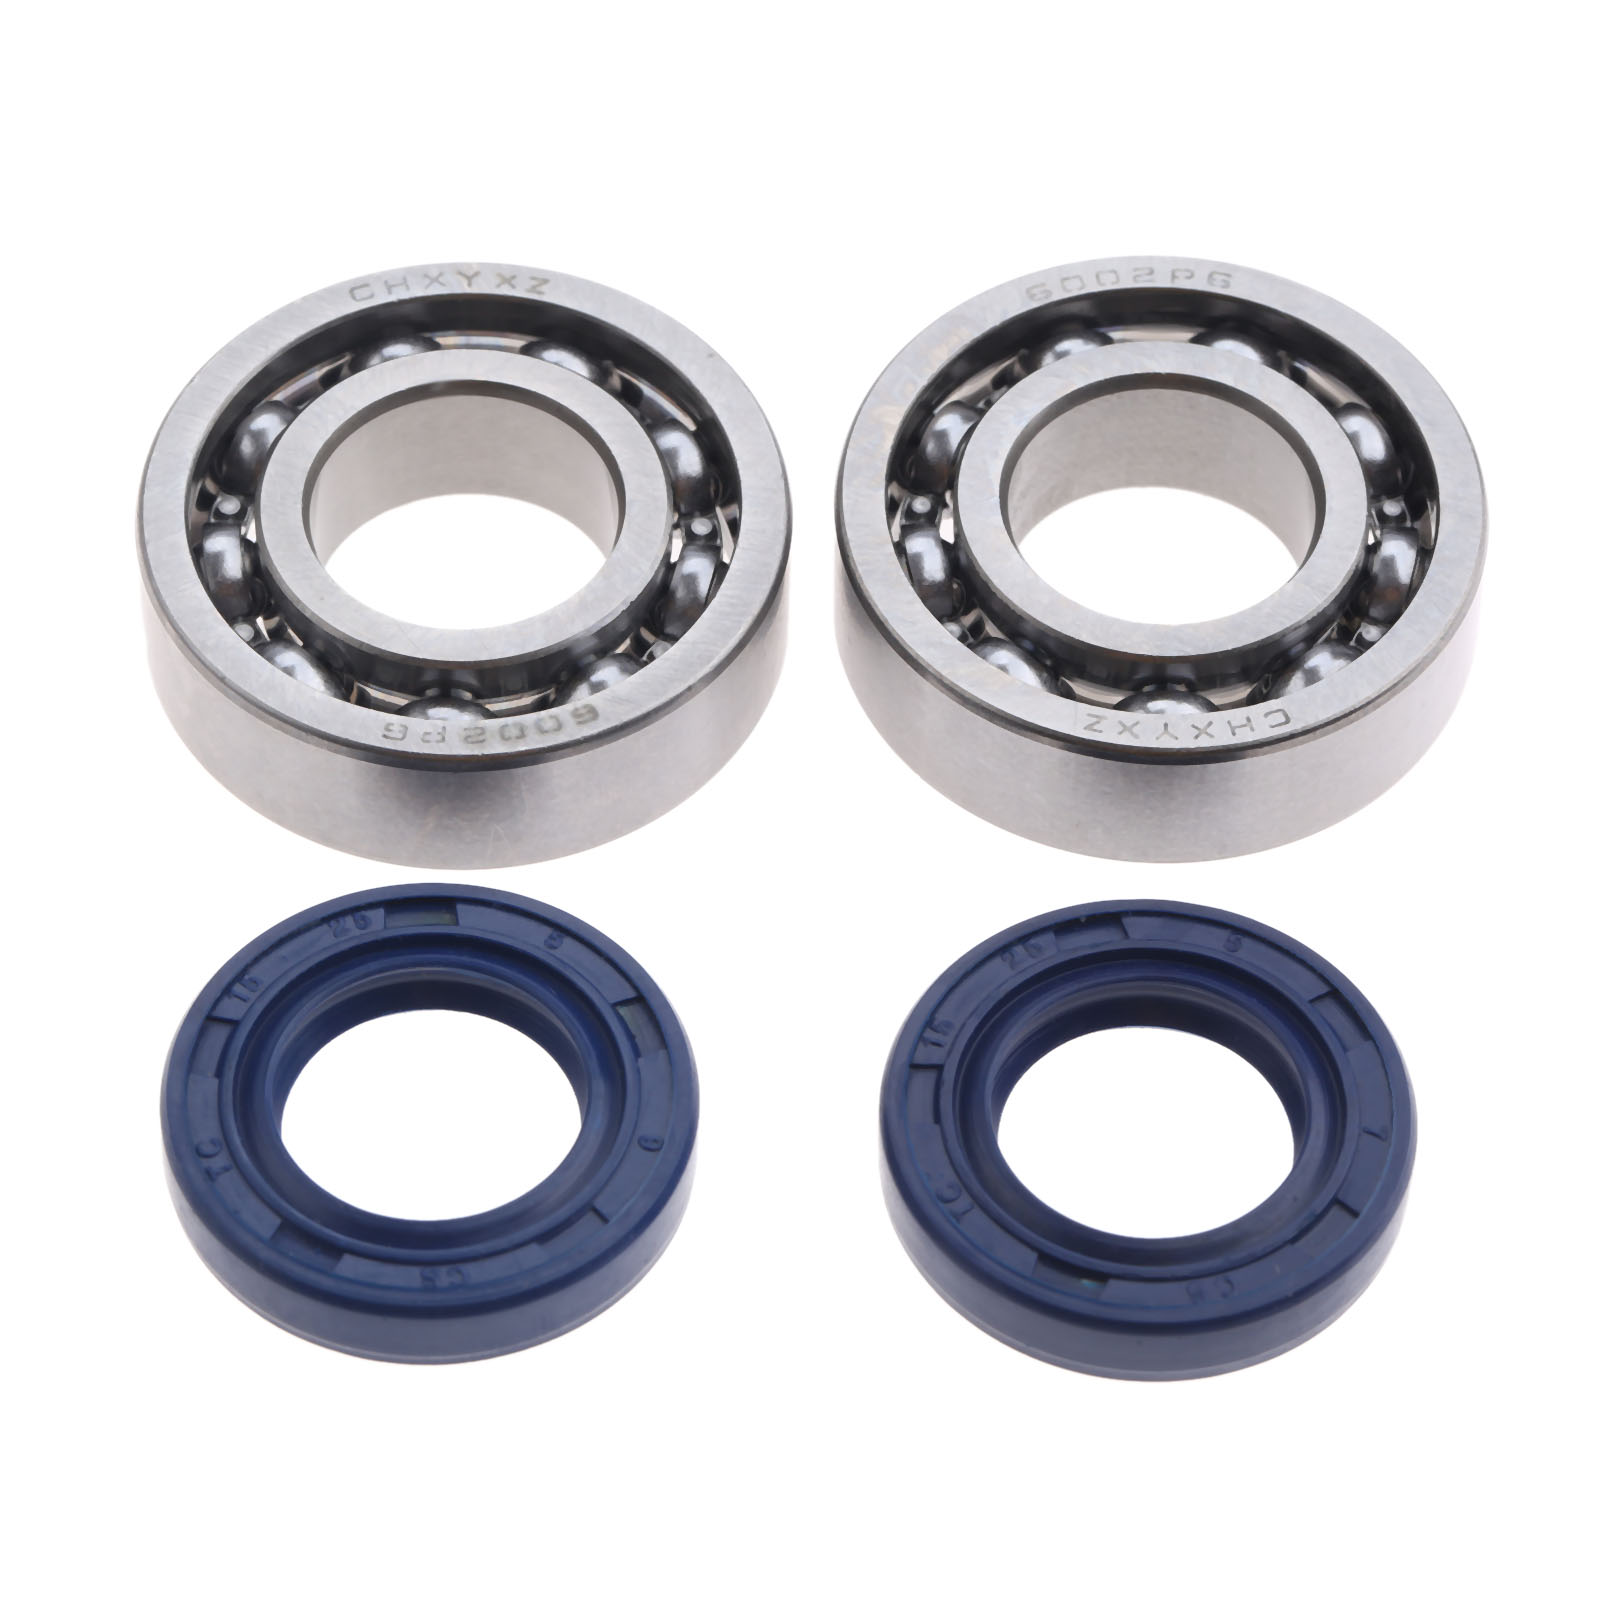 DRELD 2 Pair Crankshaft Bearing And Oil Seal Fit For STIHL 018 017 MS170 MS180 Chainsaw Garden Power Tools Sets